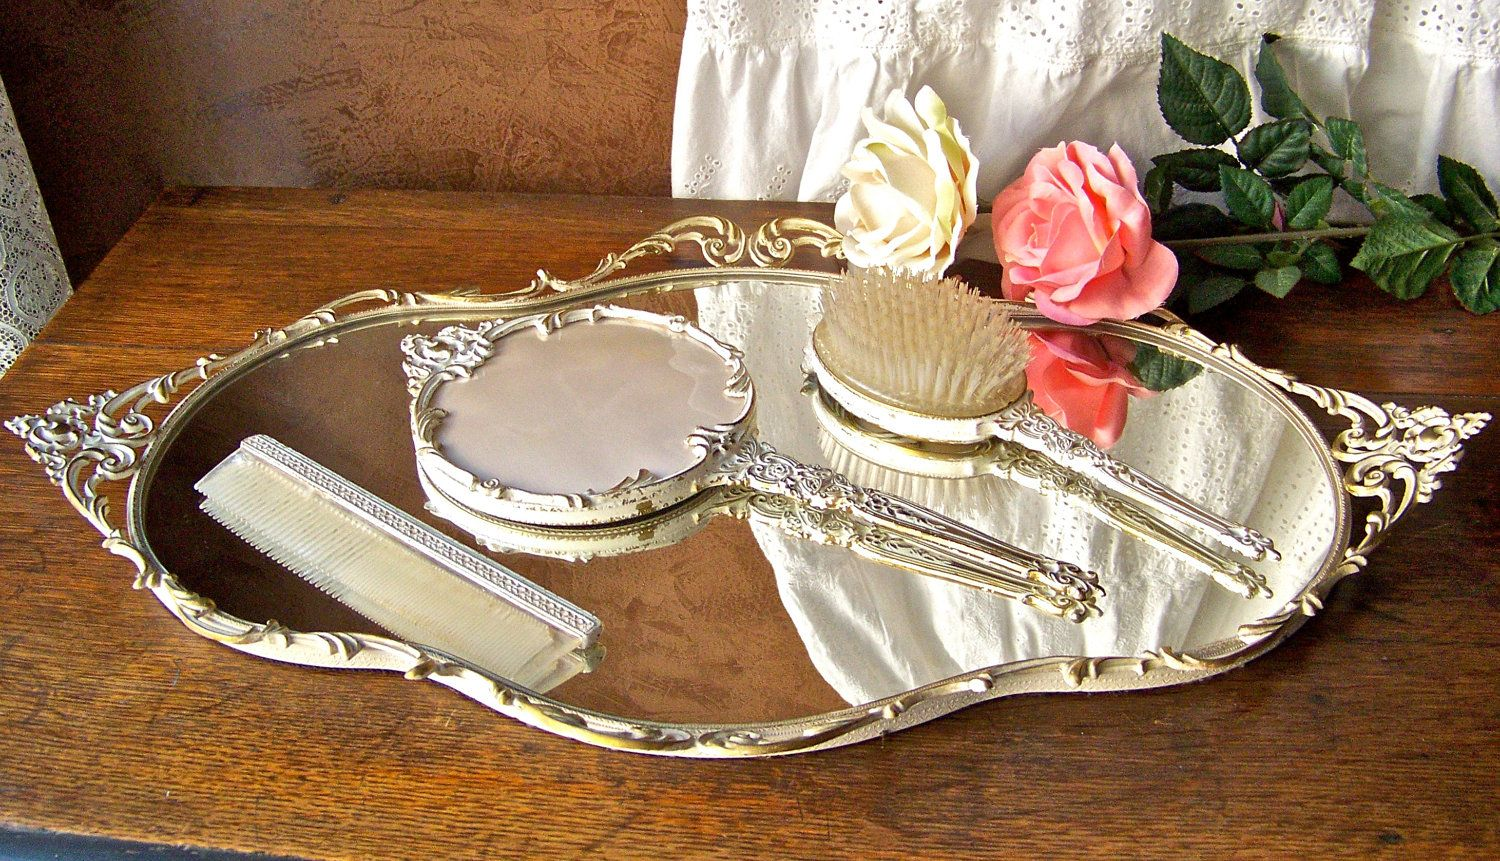 Vintage Vanity Tray with Brush Comb and Hand Mirror